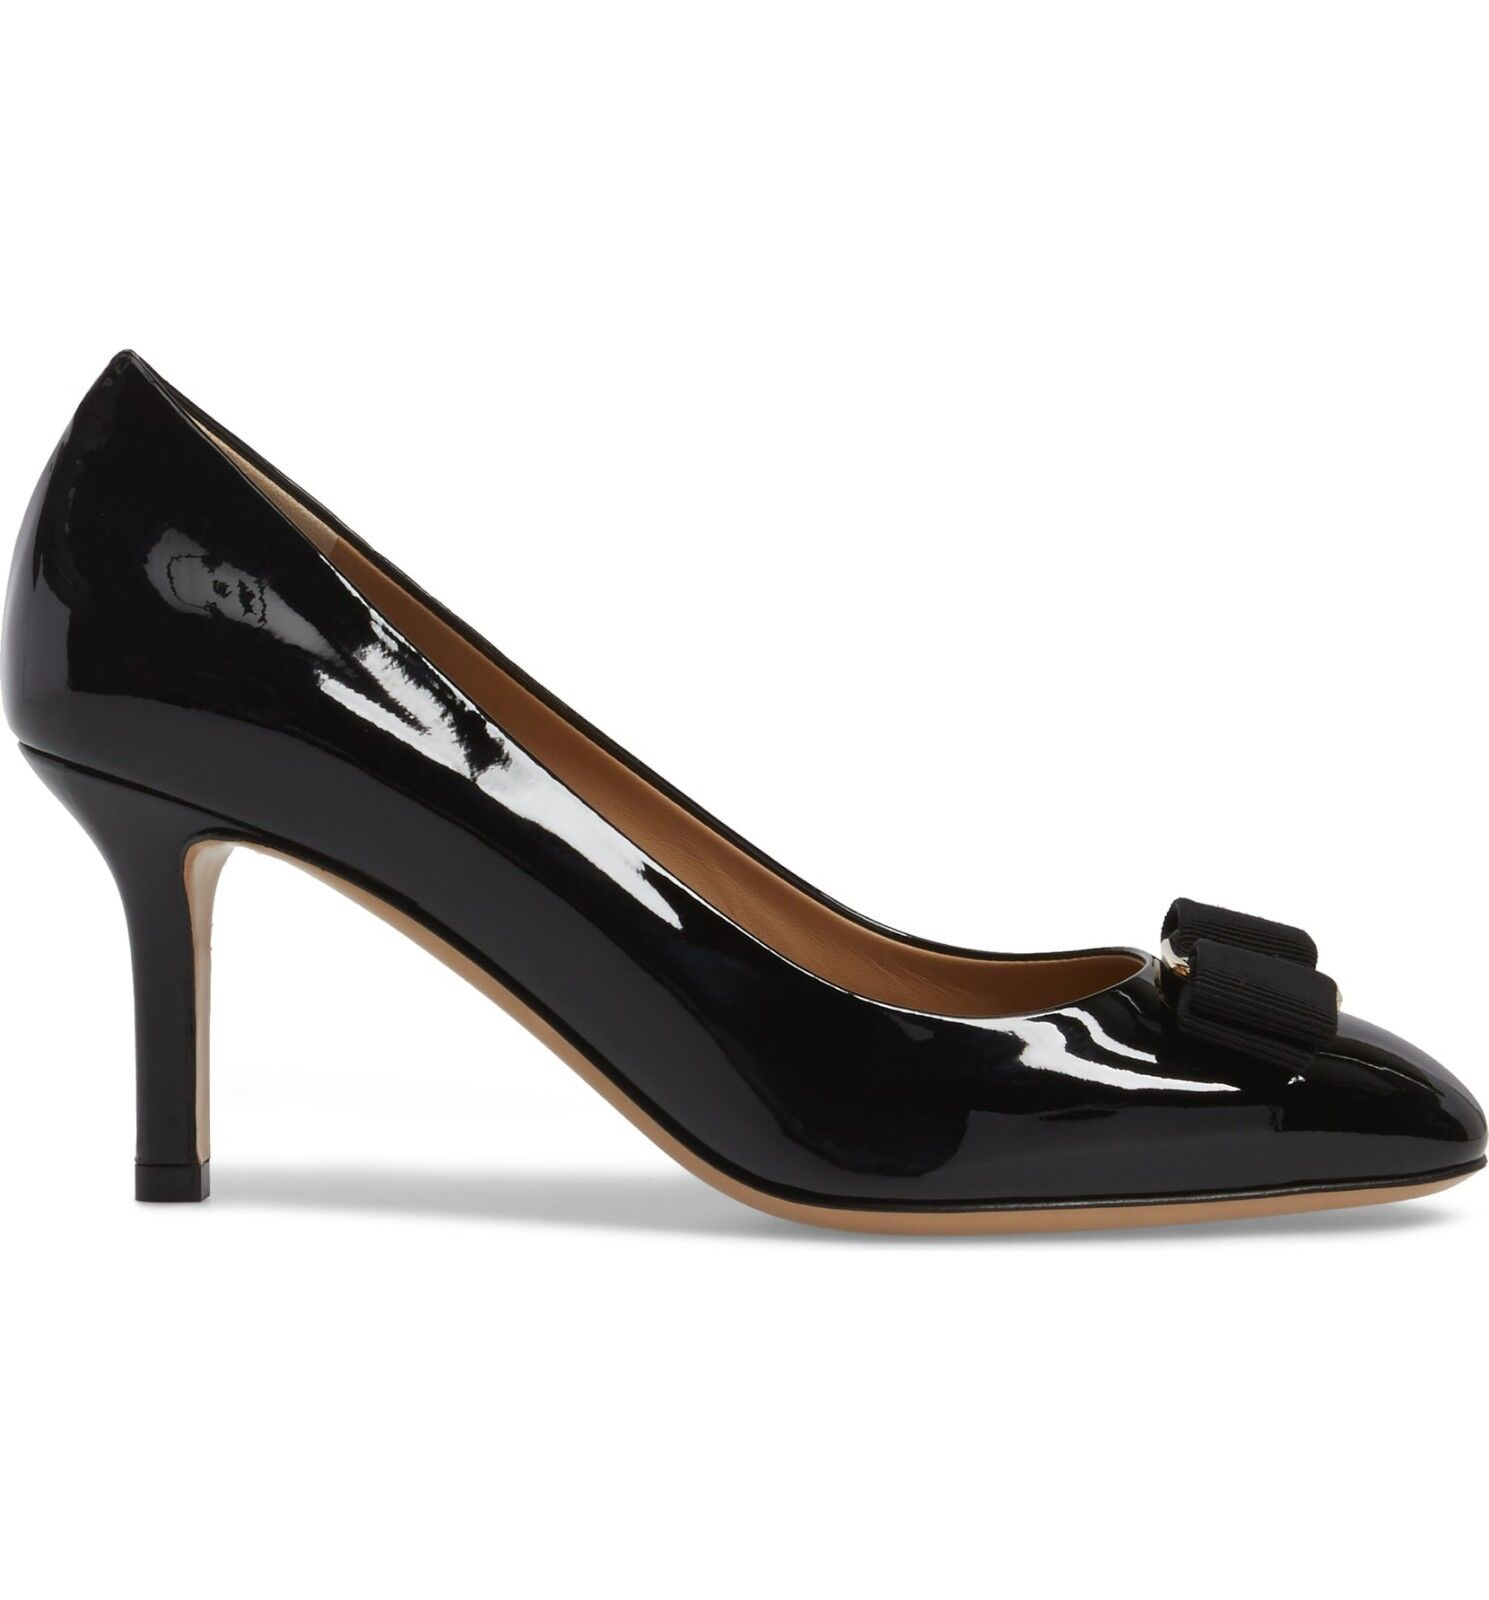 NIB NIB NIB NEW Salvatore Ferragamo Erice Patent bow pumps shoes black 7.5 8 9.5 B 1b53ef